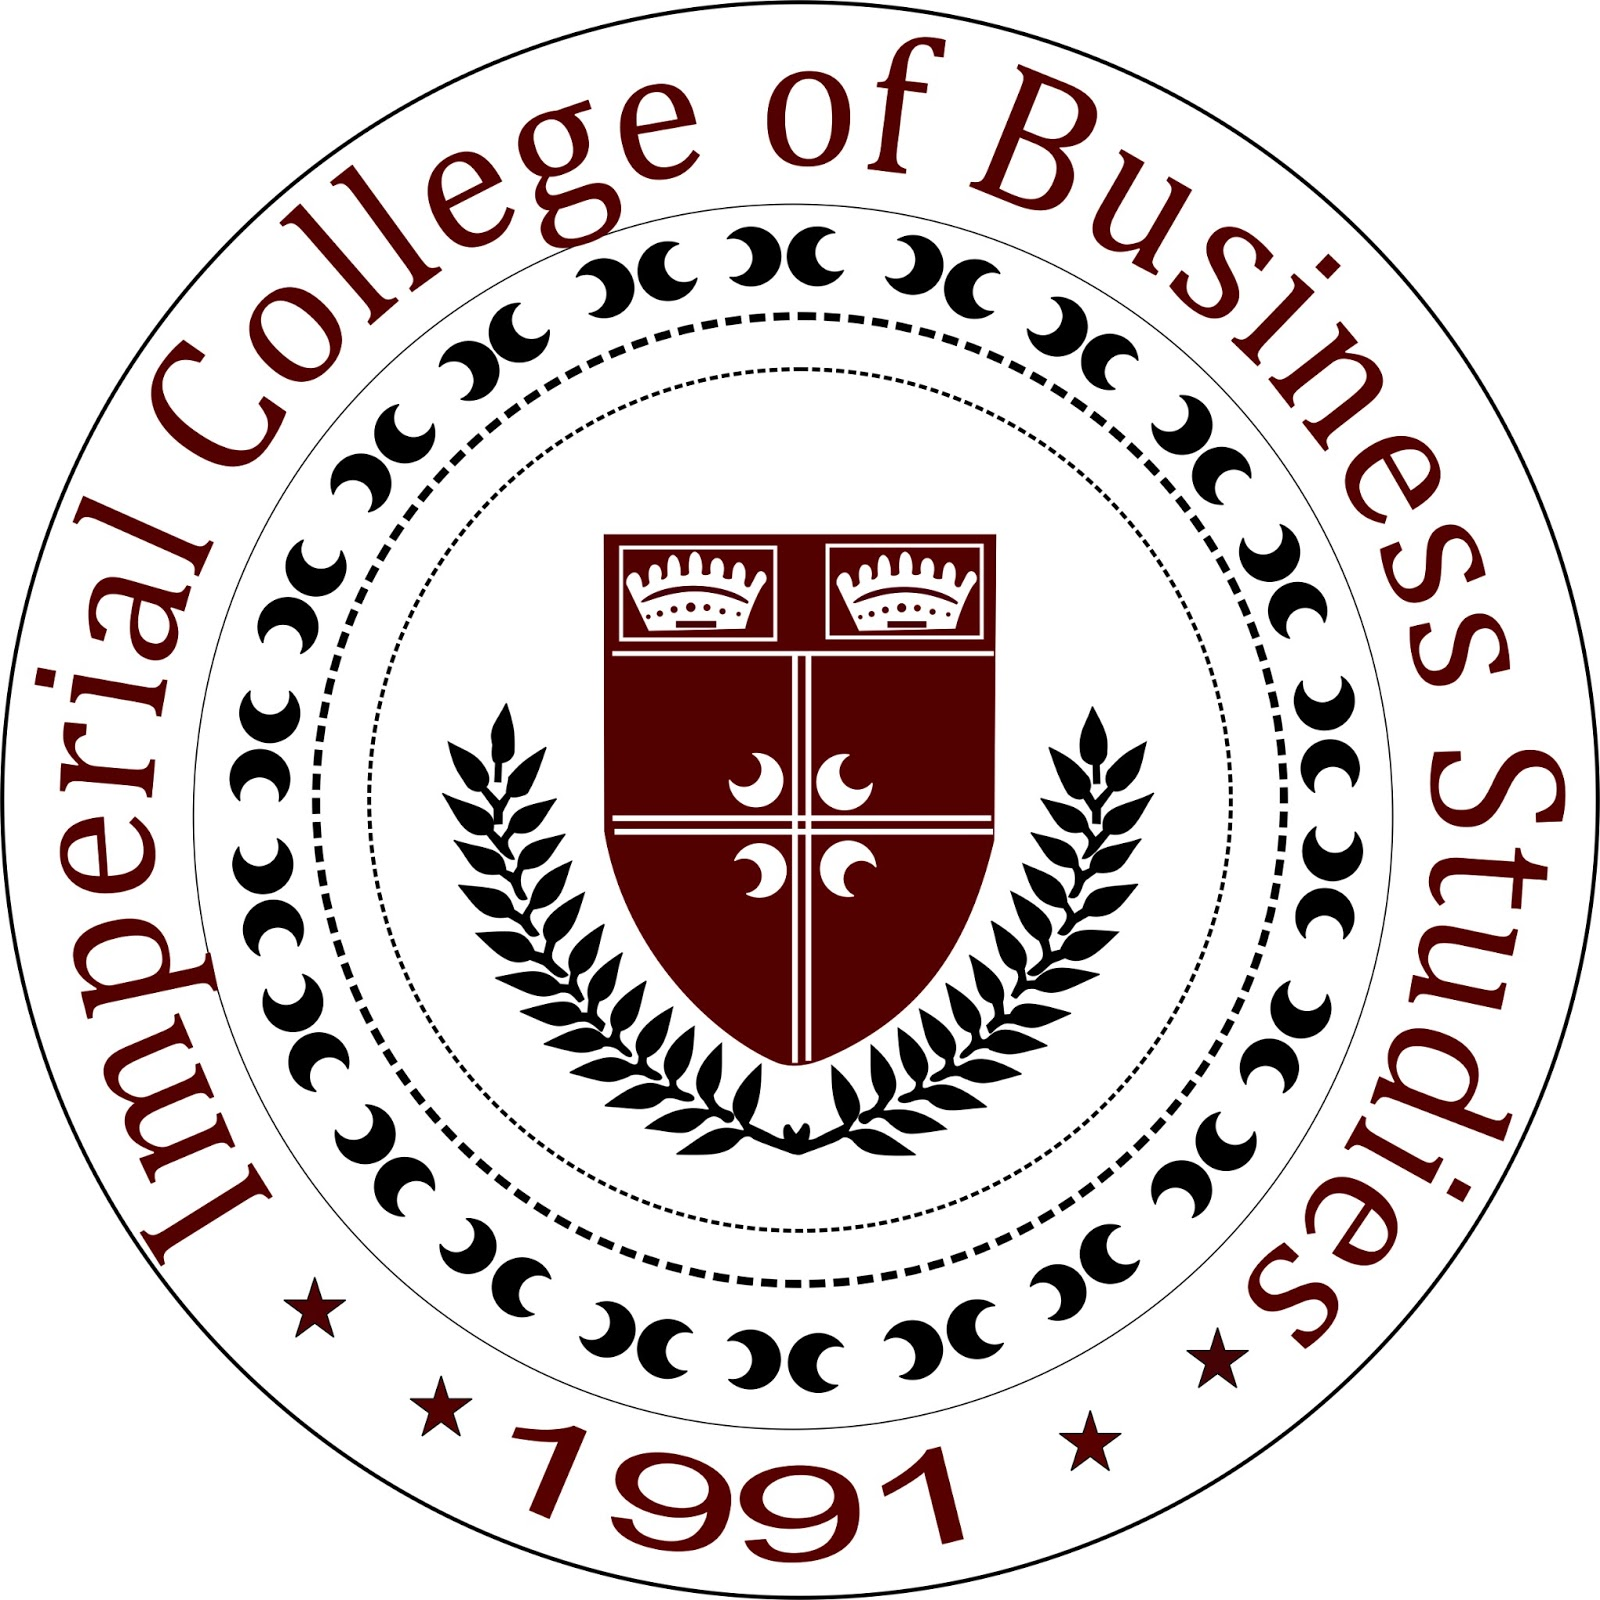 Imperial College of Business Studies BSc Admissions 2020